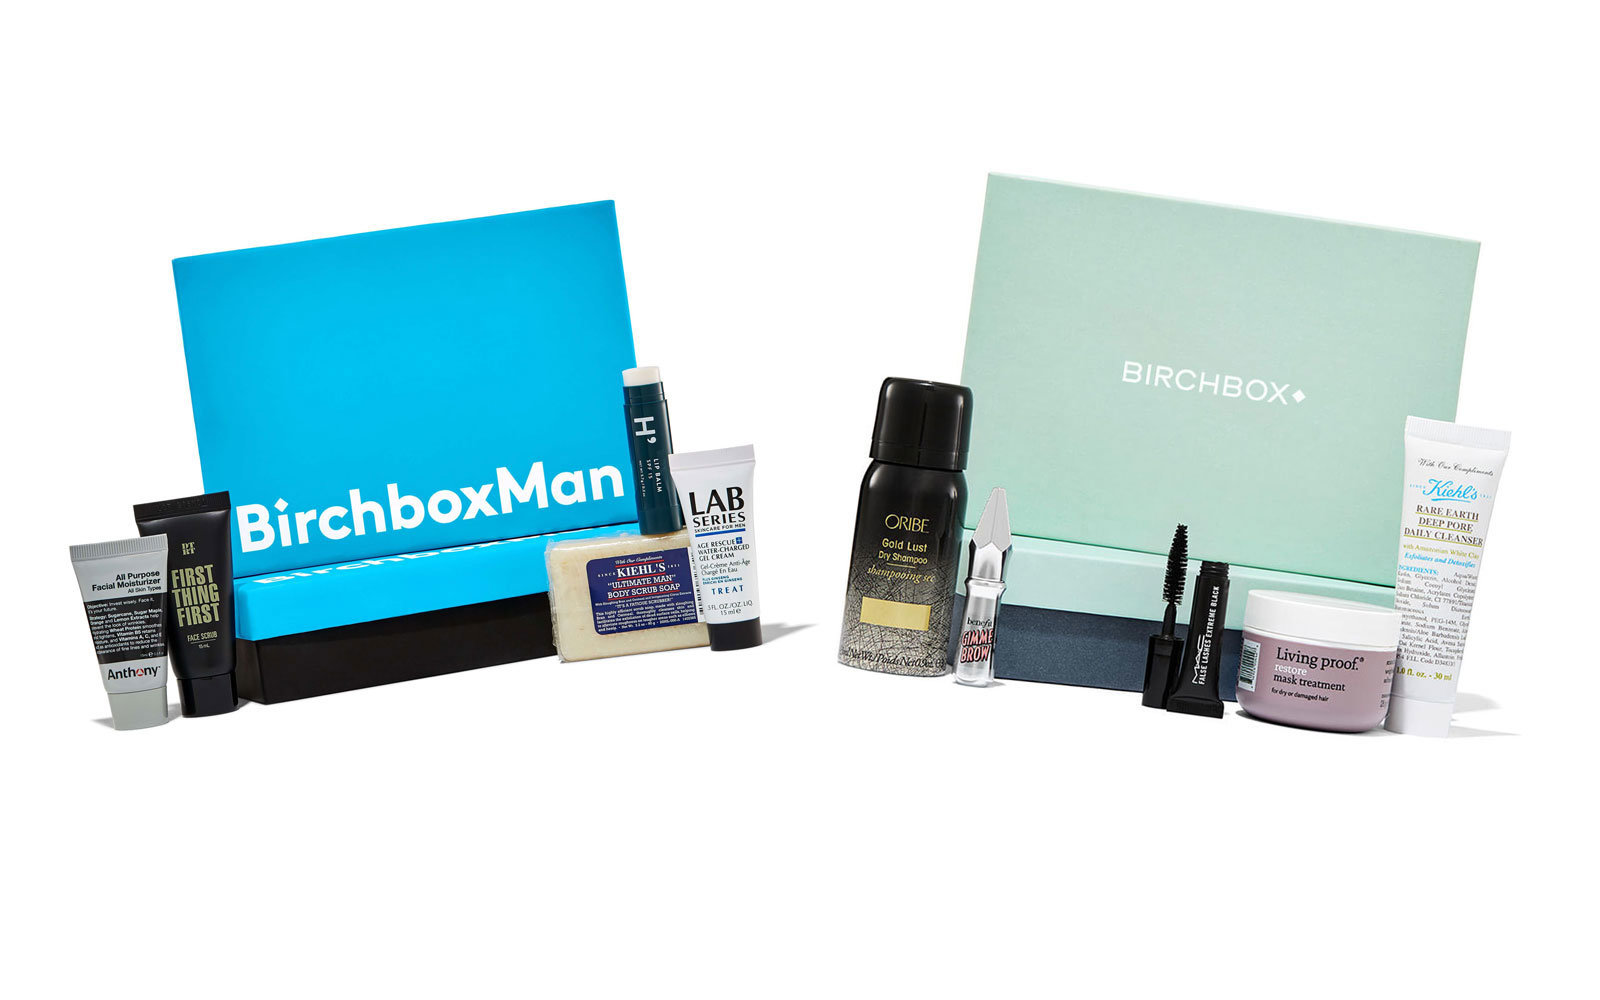 A Birchbox Subscription Gift